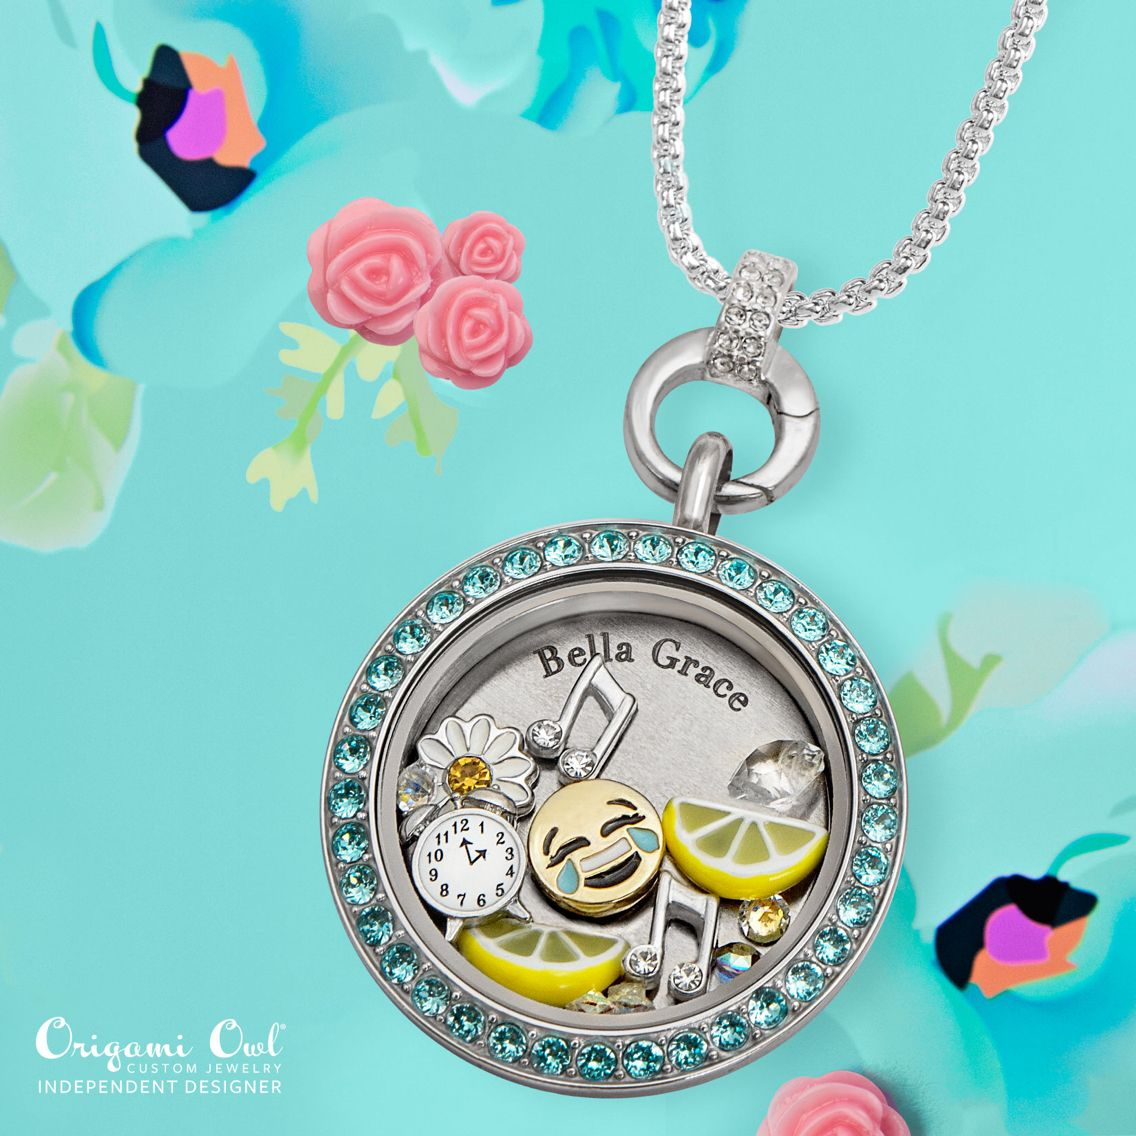 Origami owl spring collection 2016 | Origami owl ... - photo#18